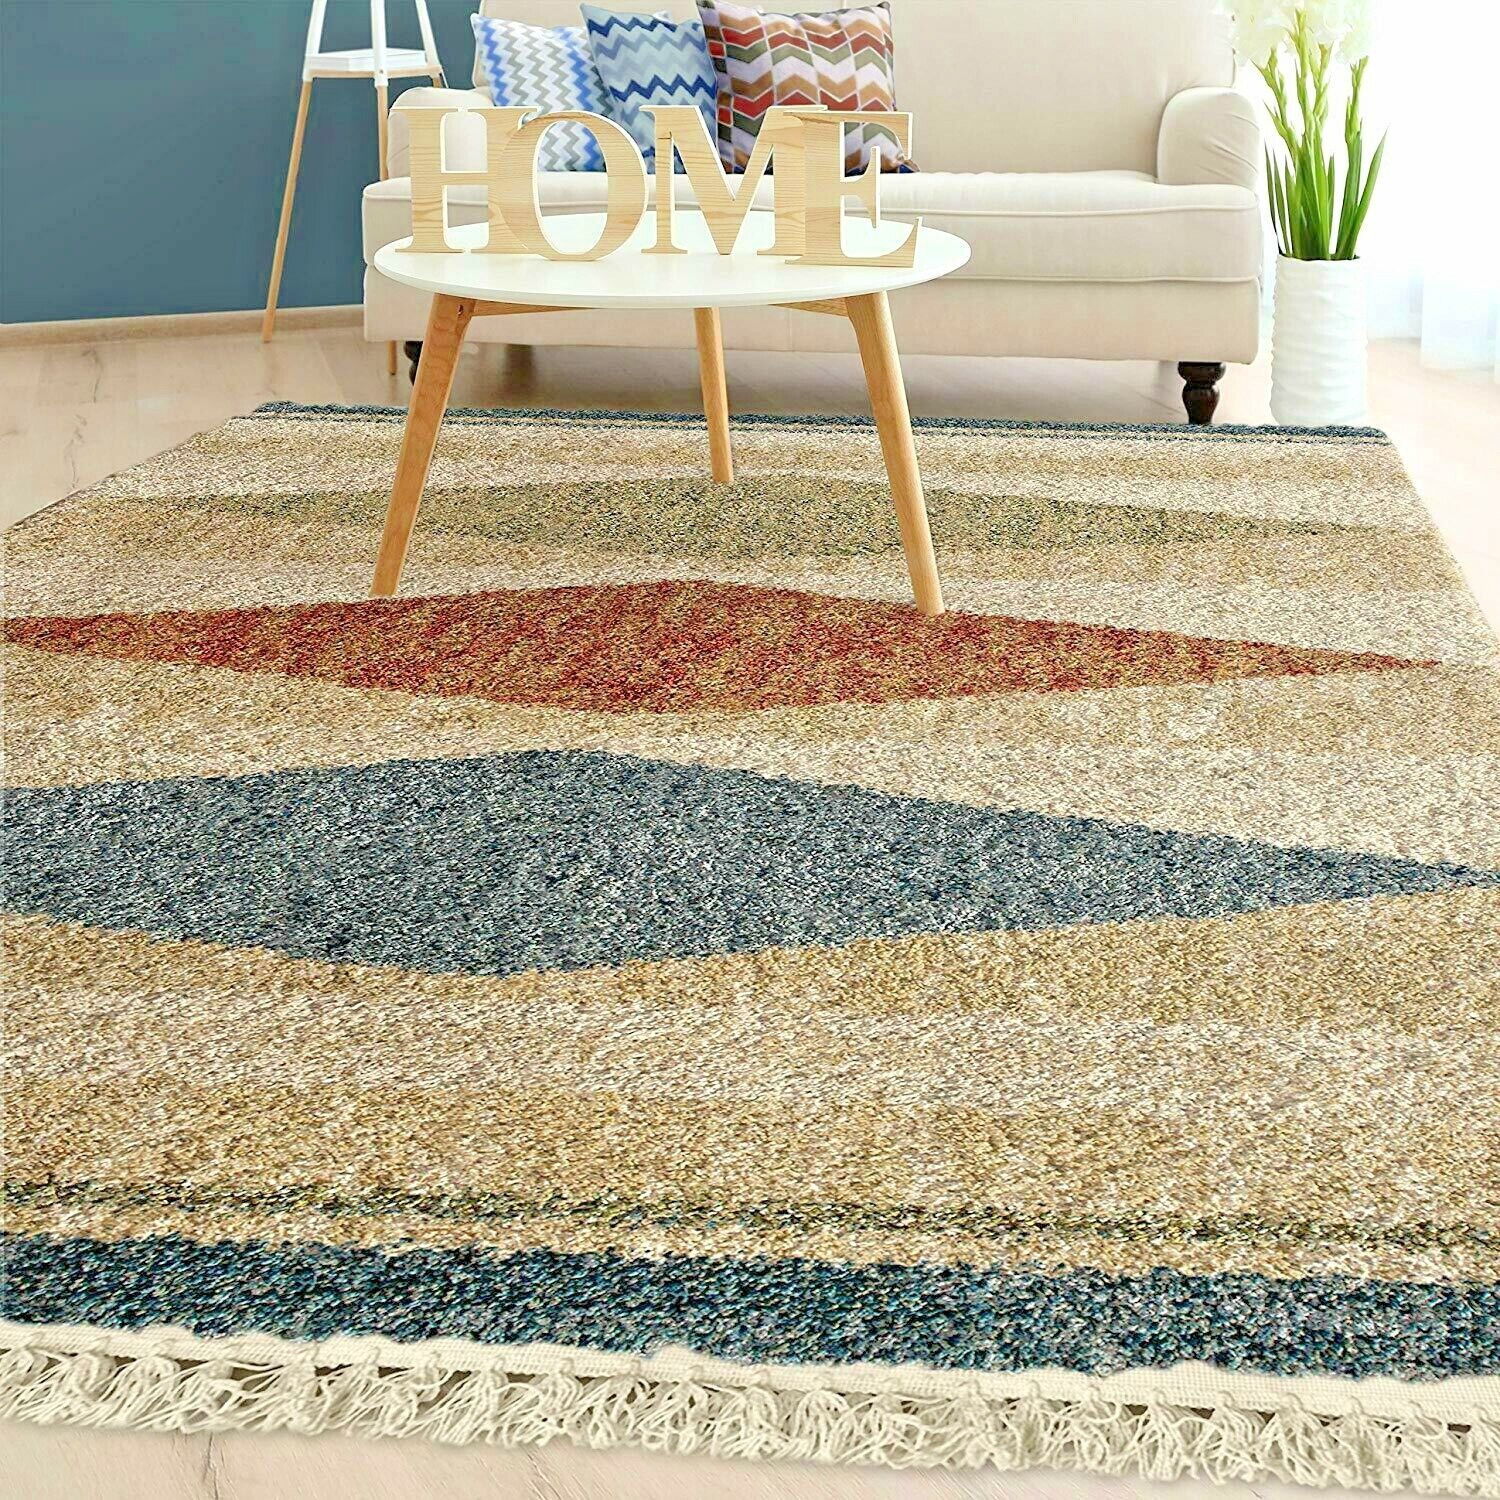 Details About Rugs Area Rugs Carpets 8x10 Rug Floor 5x7 Modern Bedroom Large Living Room Rugs